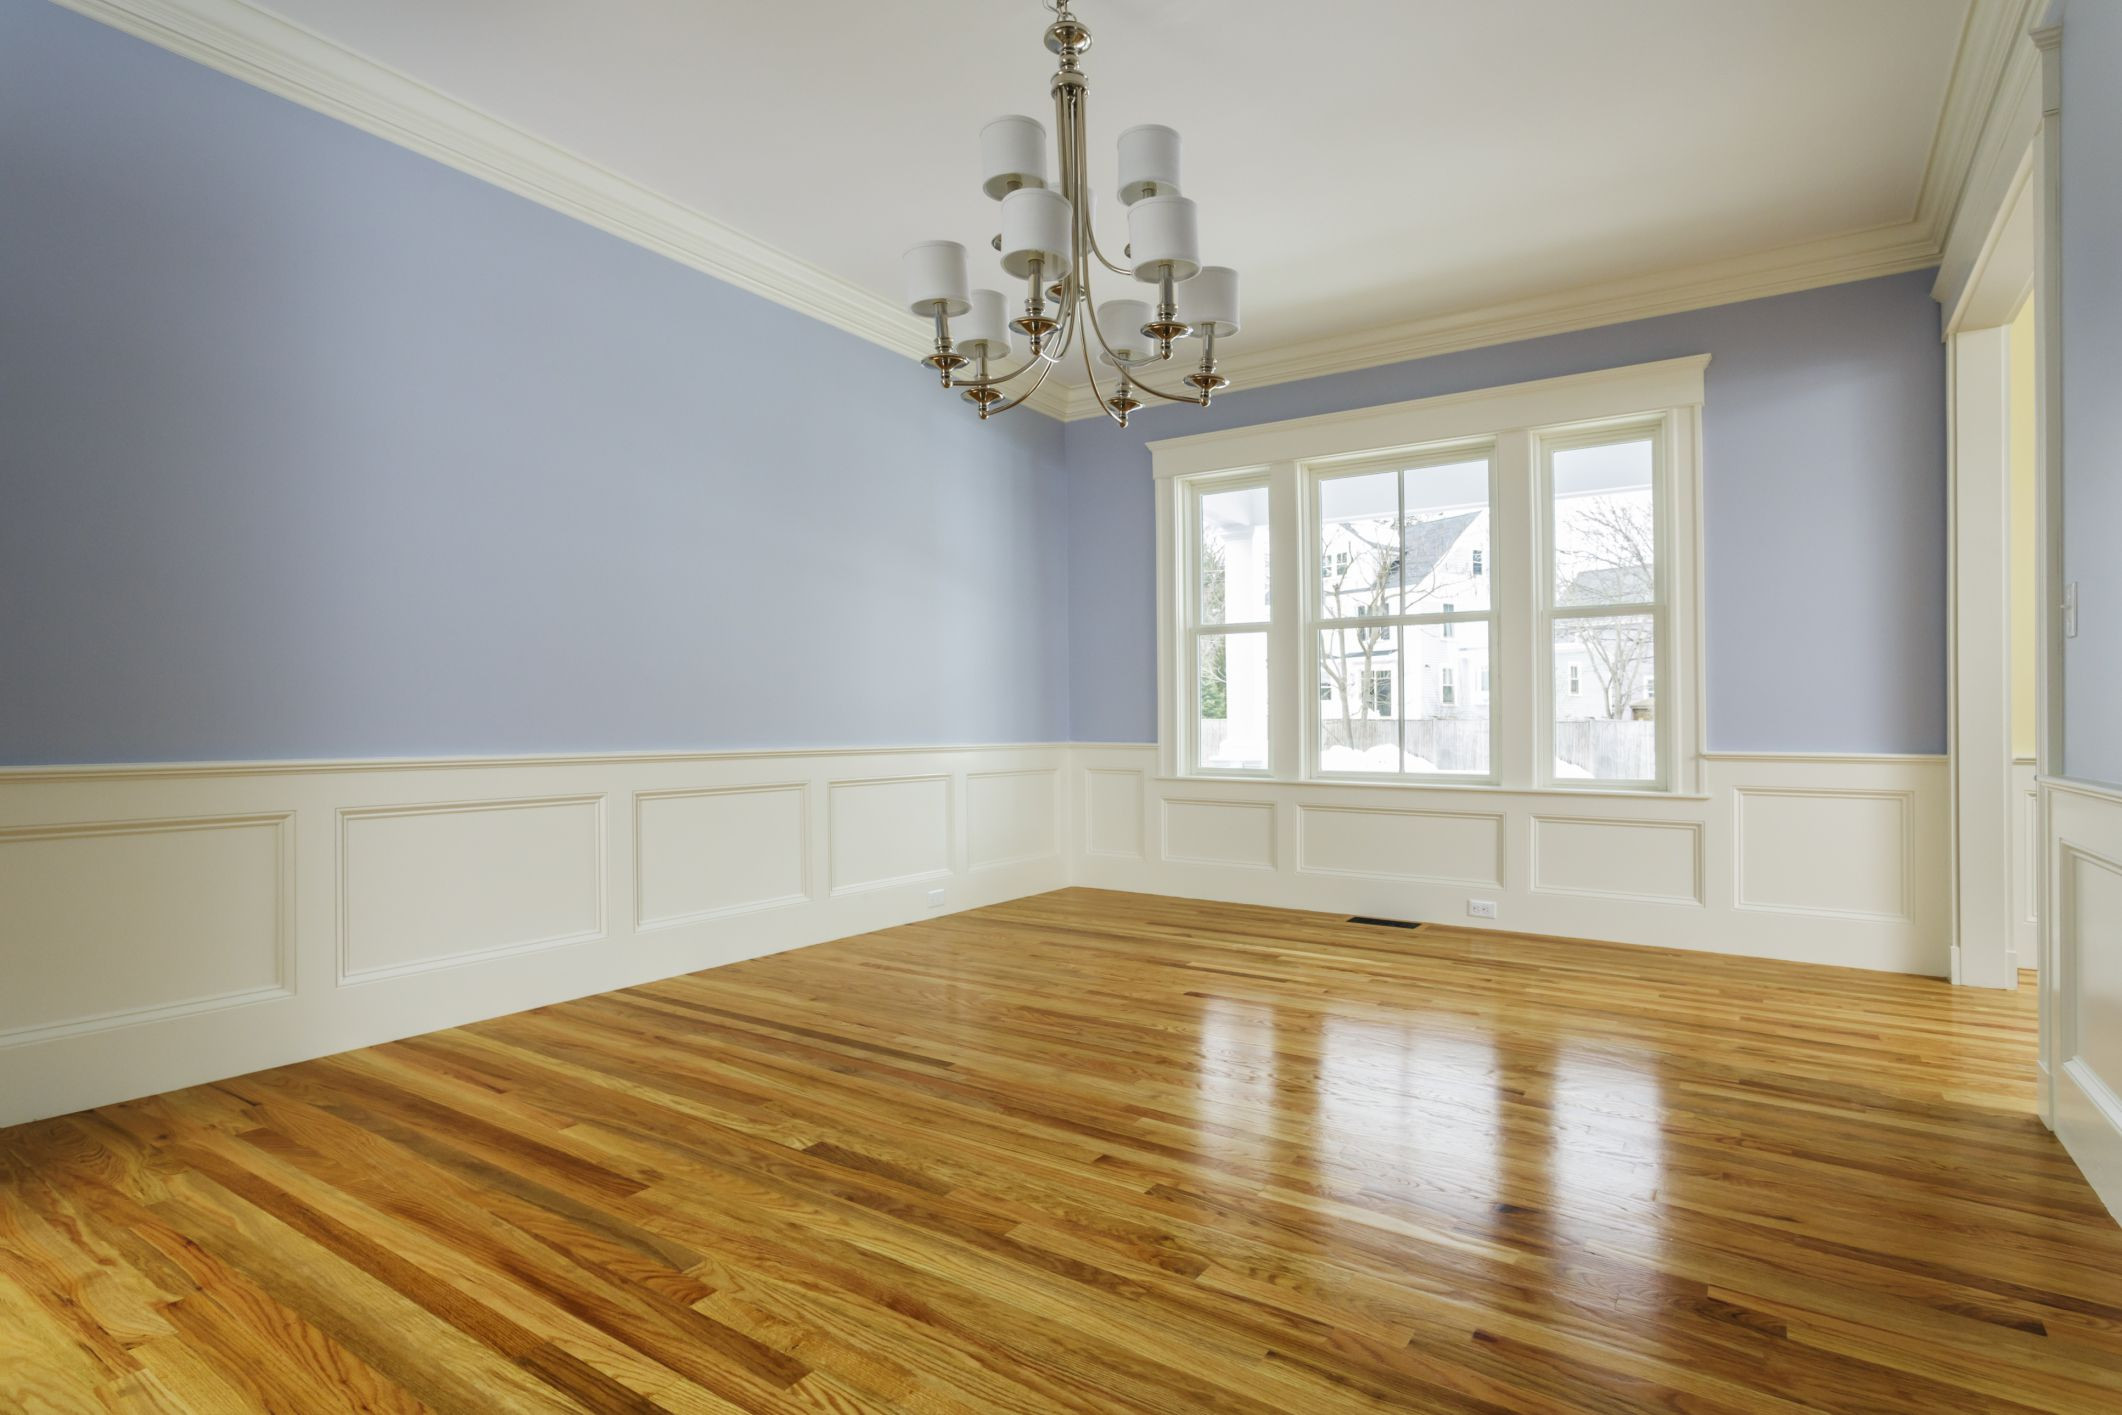 hardwood floor finishes satin or gloss of how to make hardwood floors shiny in 168686572 56a4e87c3df78cf7728544a2